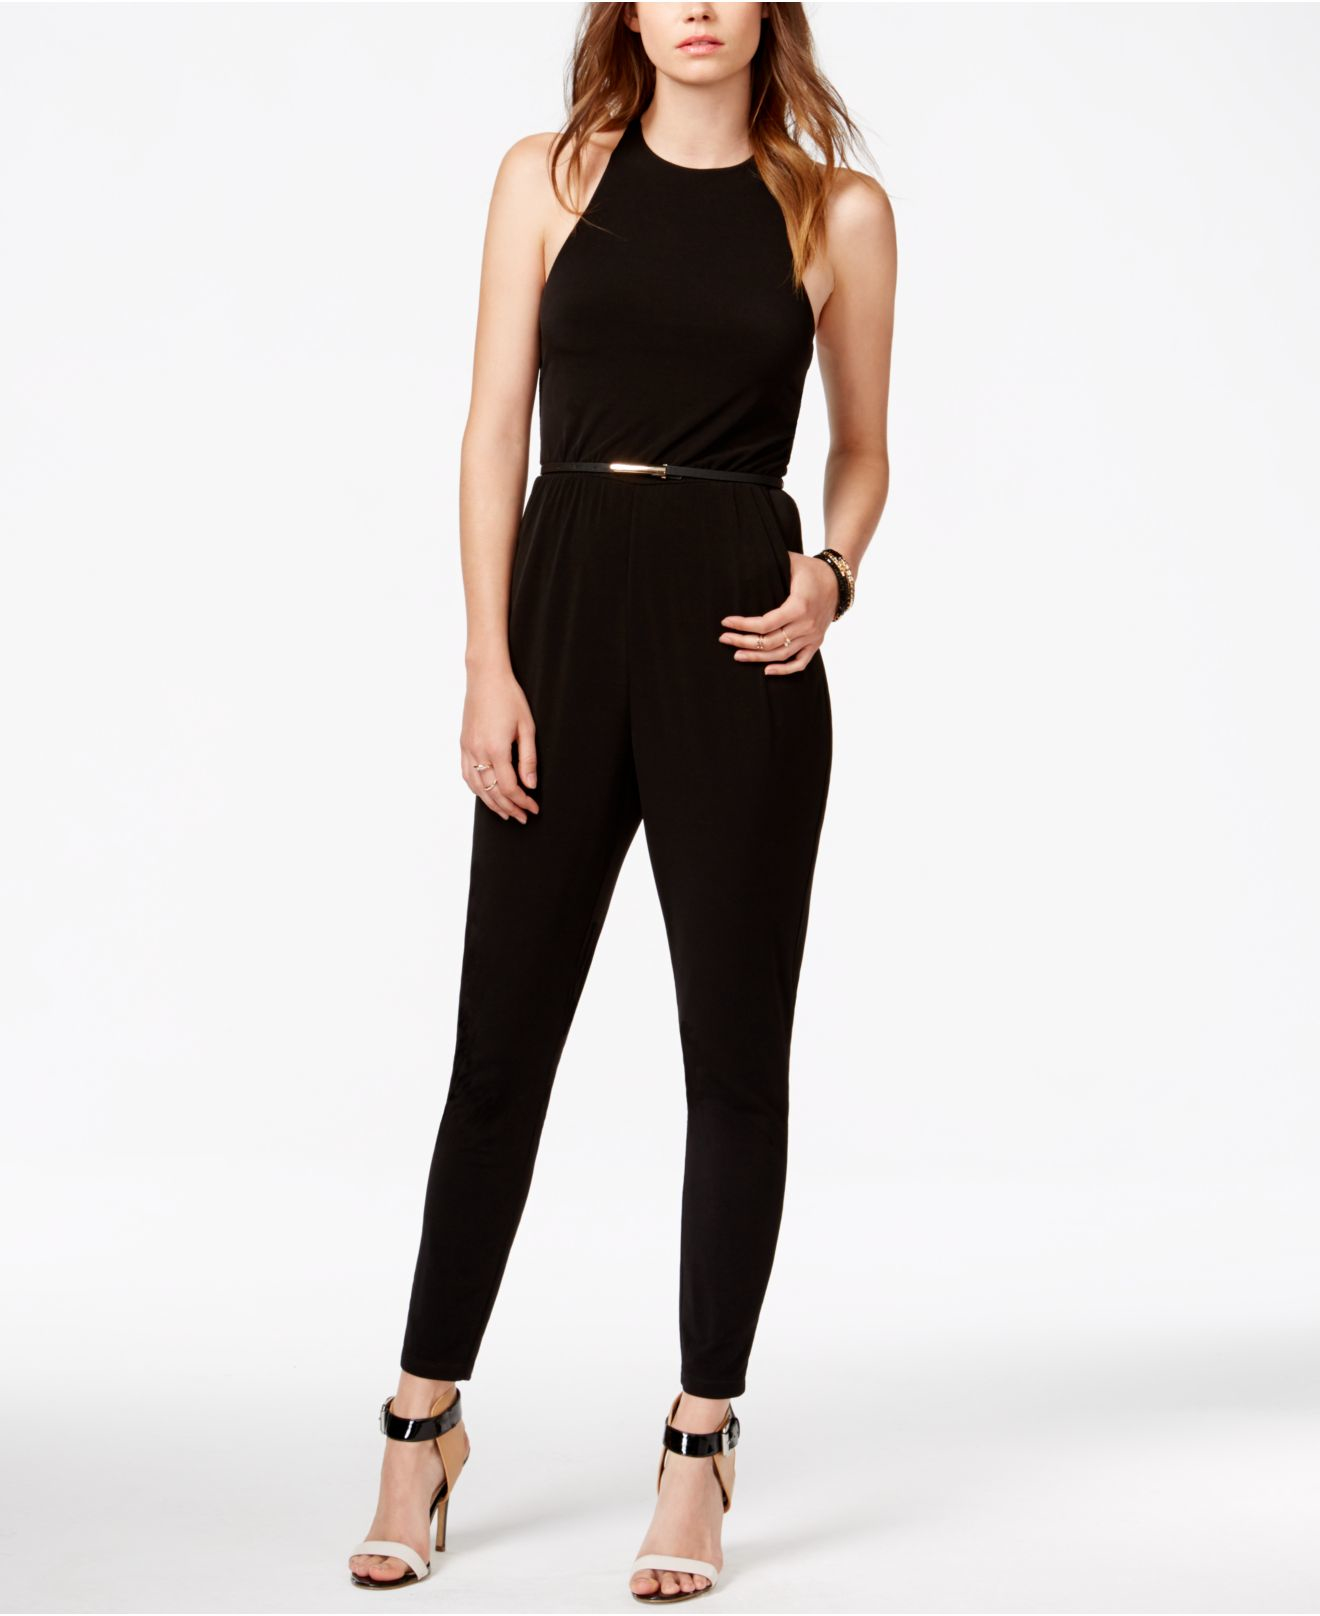 69c726e9ce5e Lyst - Guess Sleeveless Belted Jumpsuit in Black